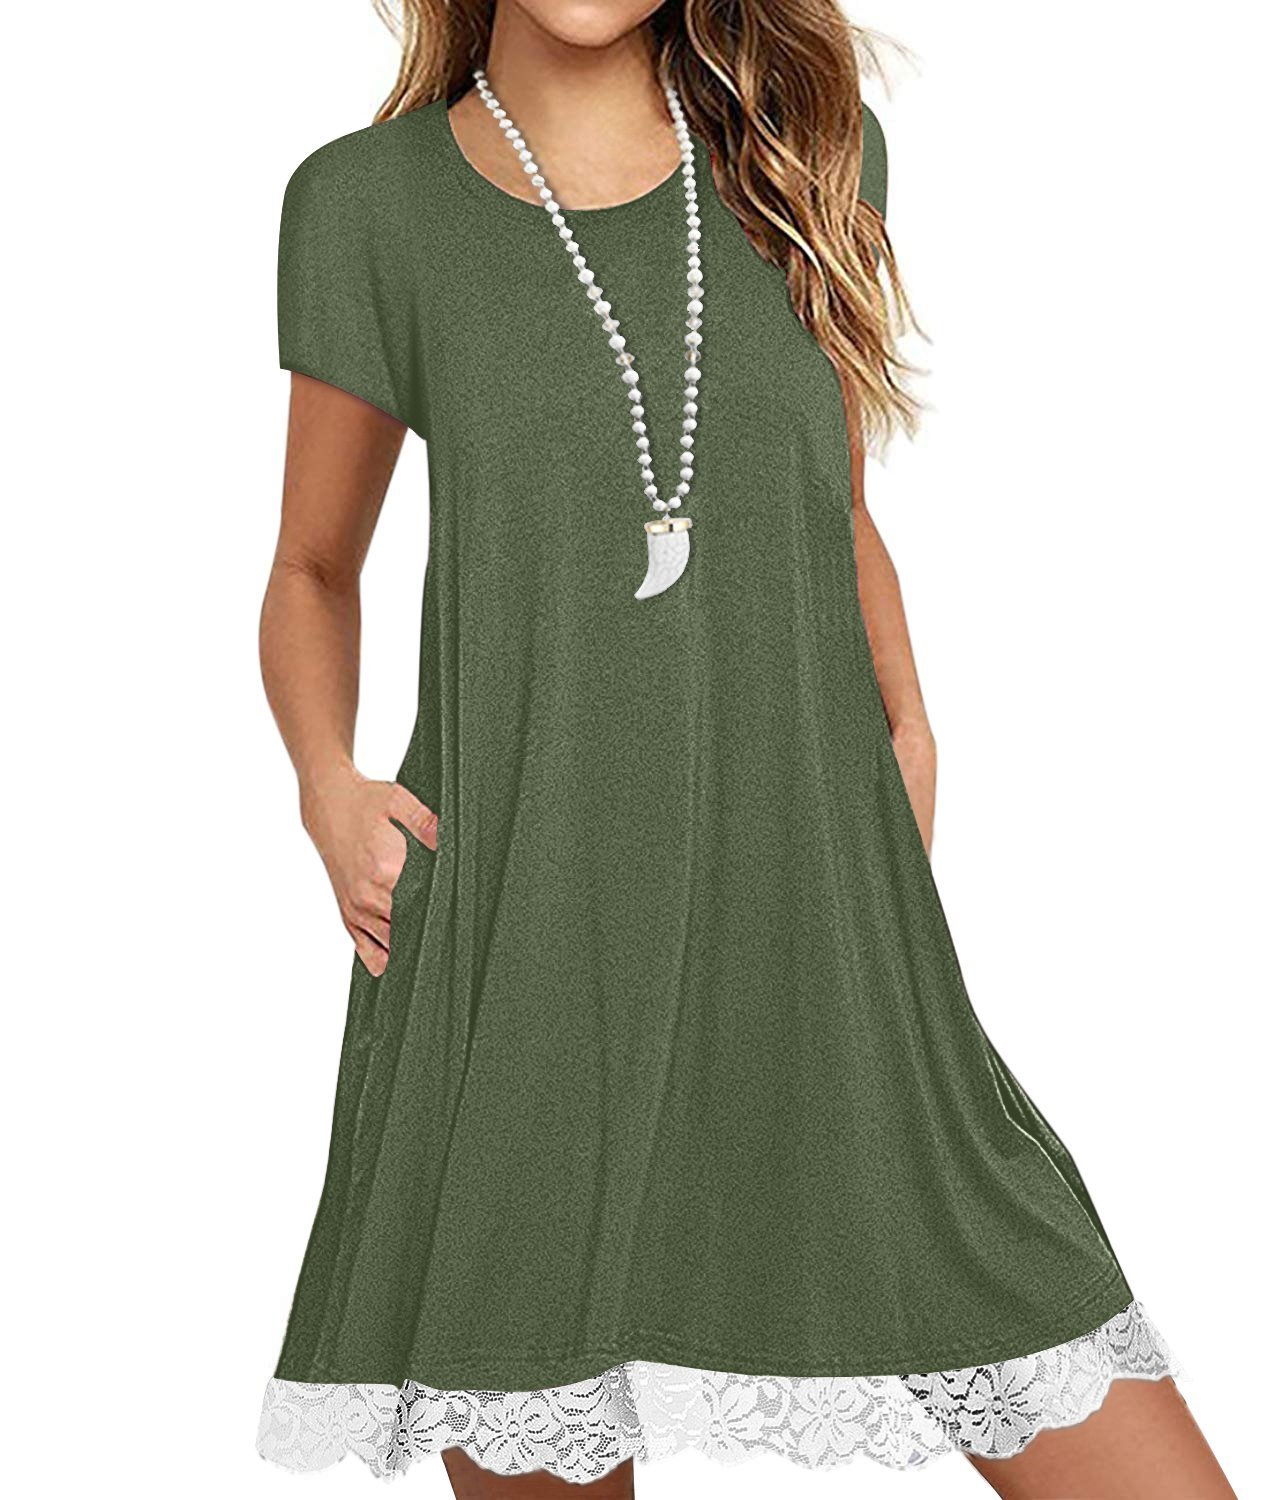 Eanklosco Womens Casual Short Sleeve Plain Pocket V Neck T Shirt Tunic Dress (Green-2, S)